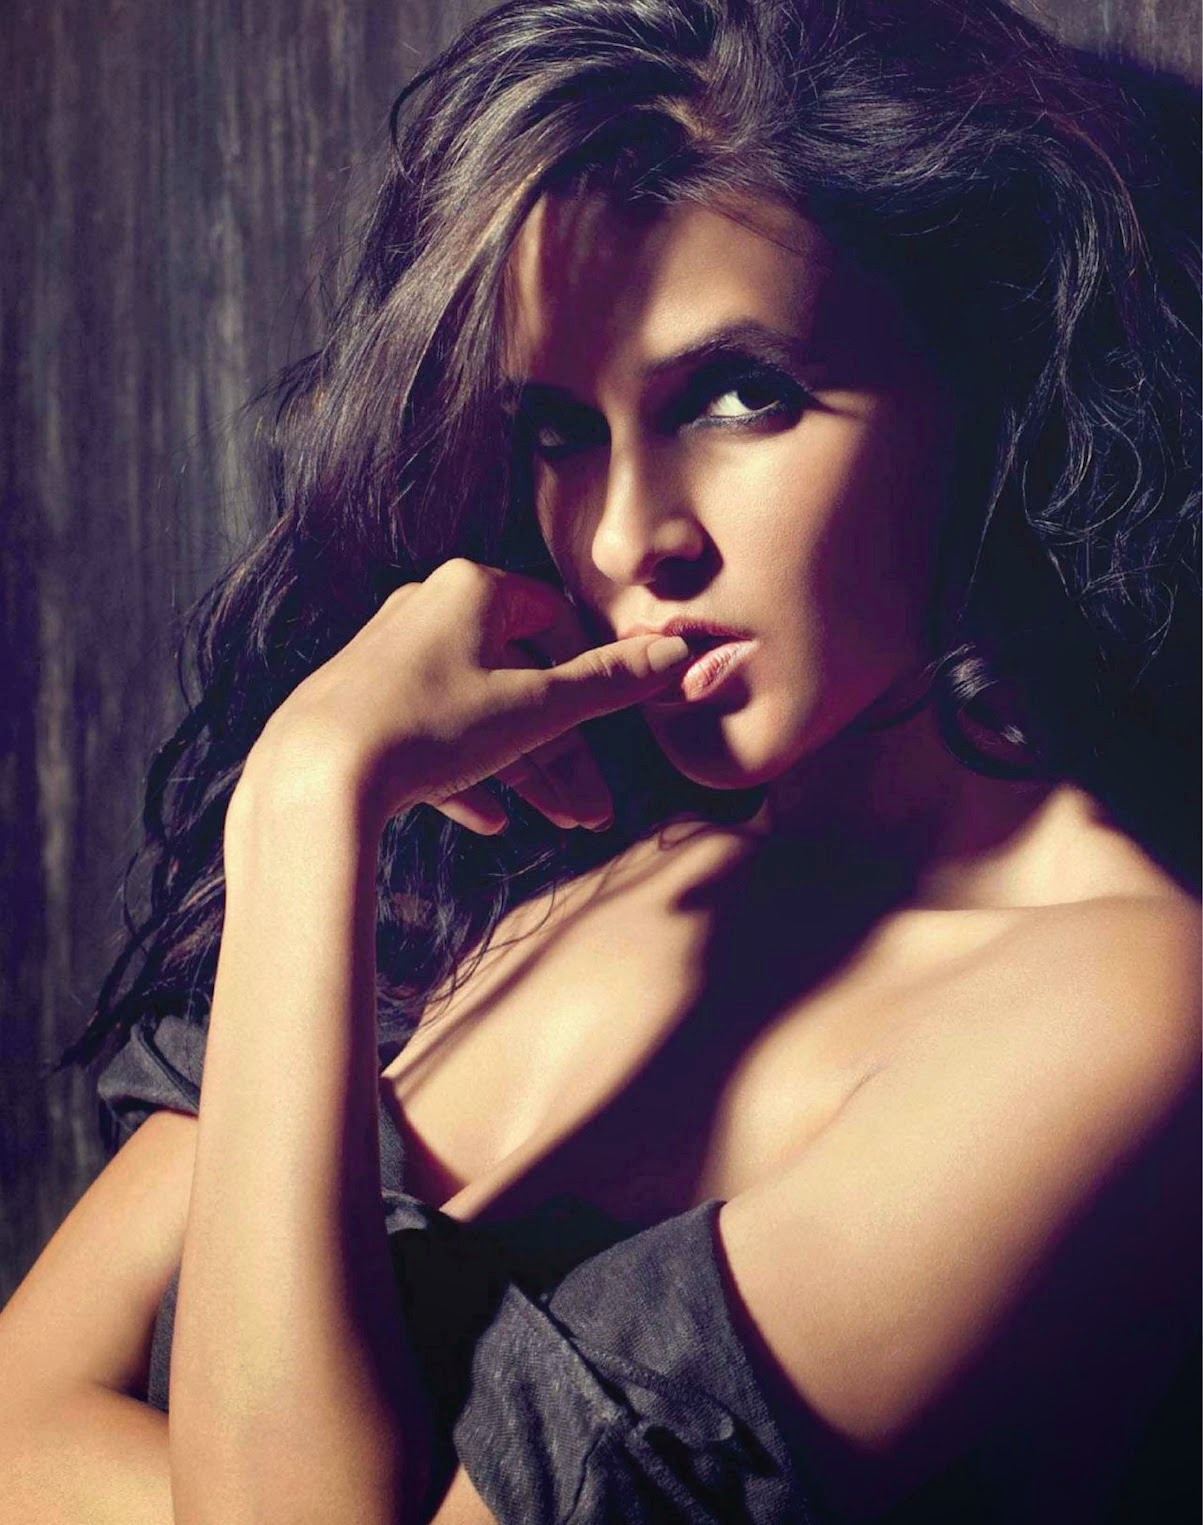 neha-dhupia-maxim-photo